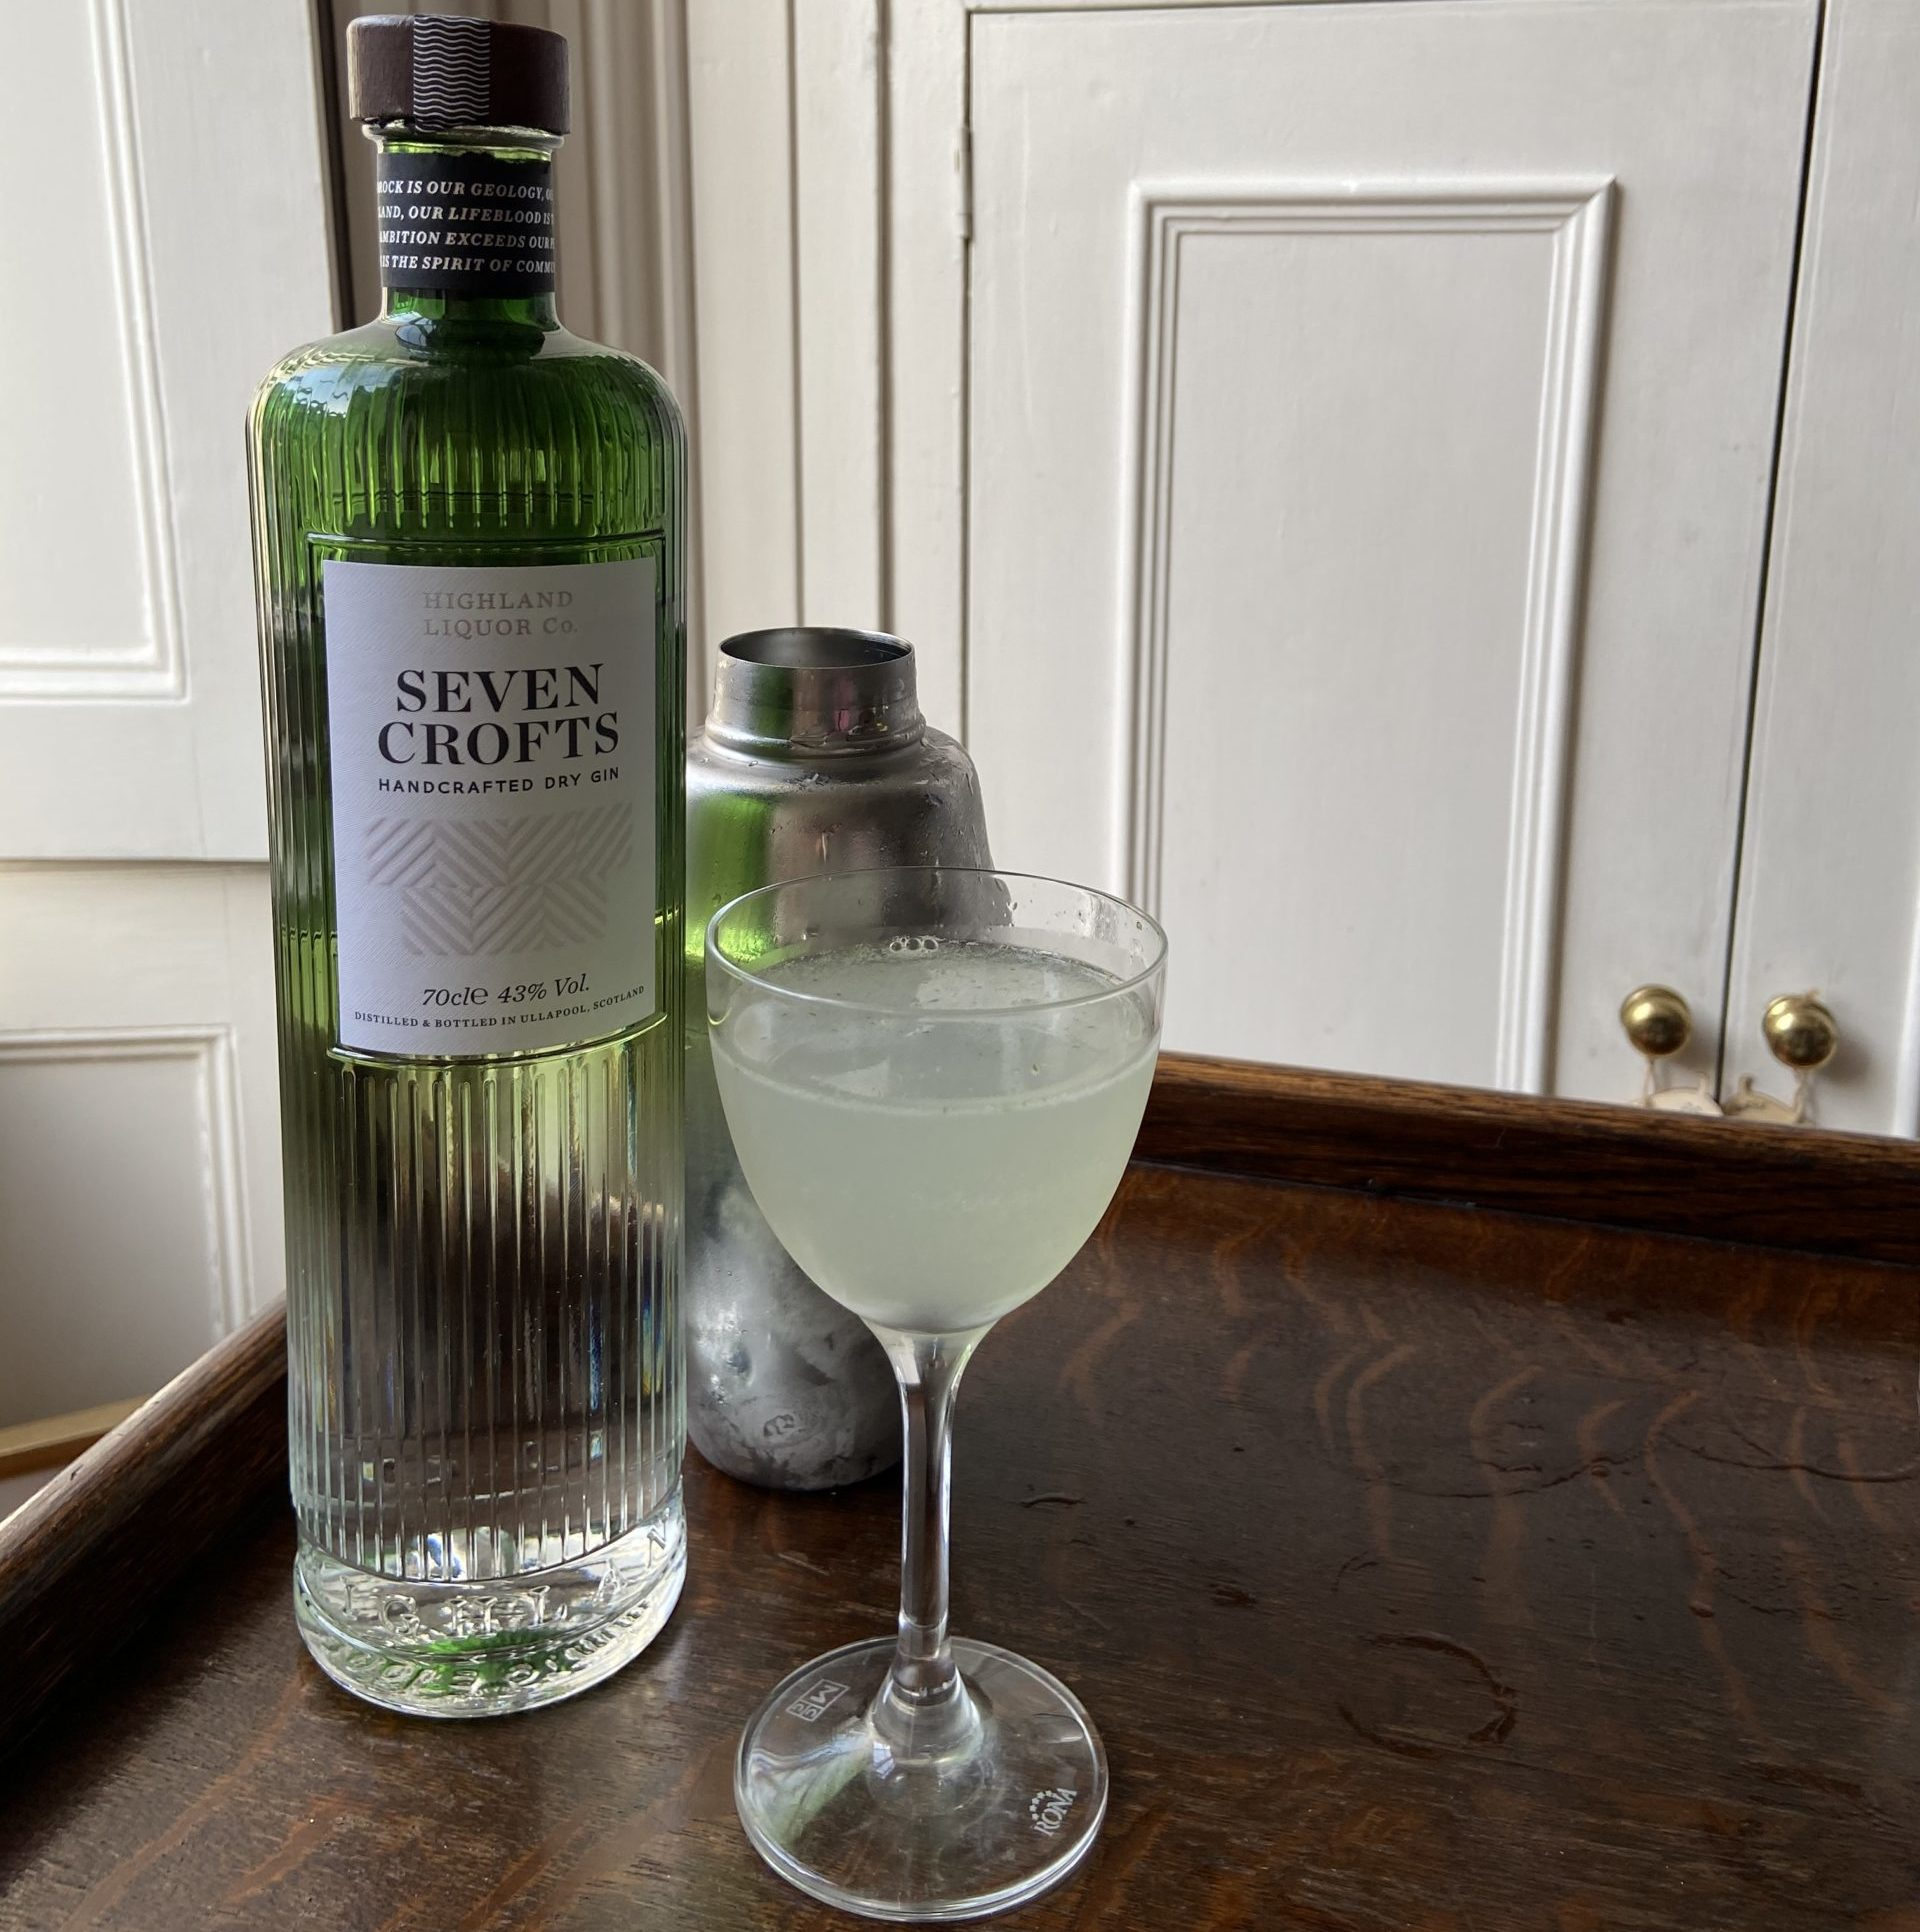 Seven crofts gin cocktail